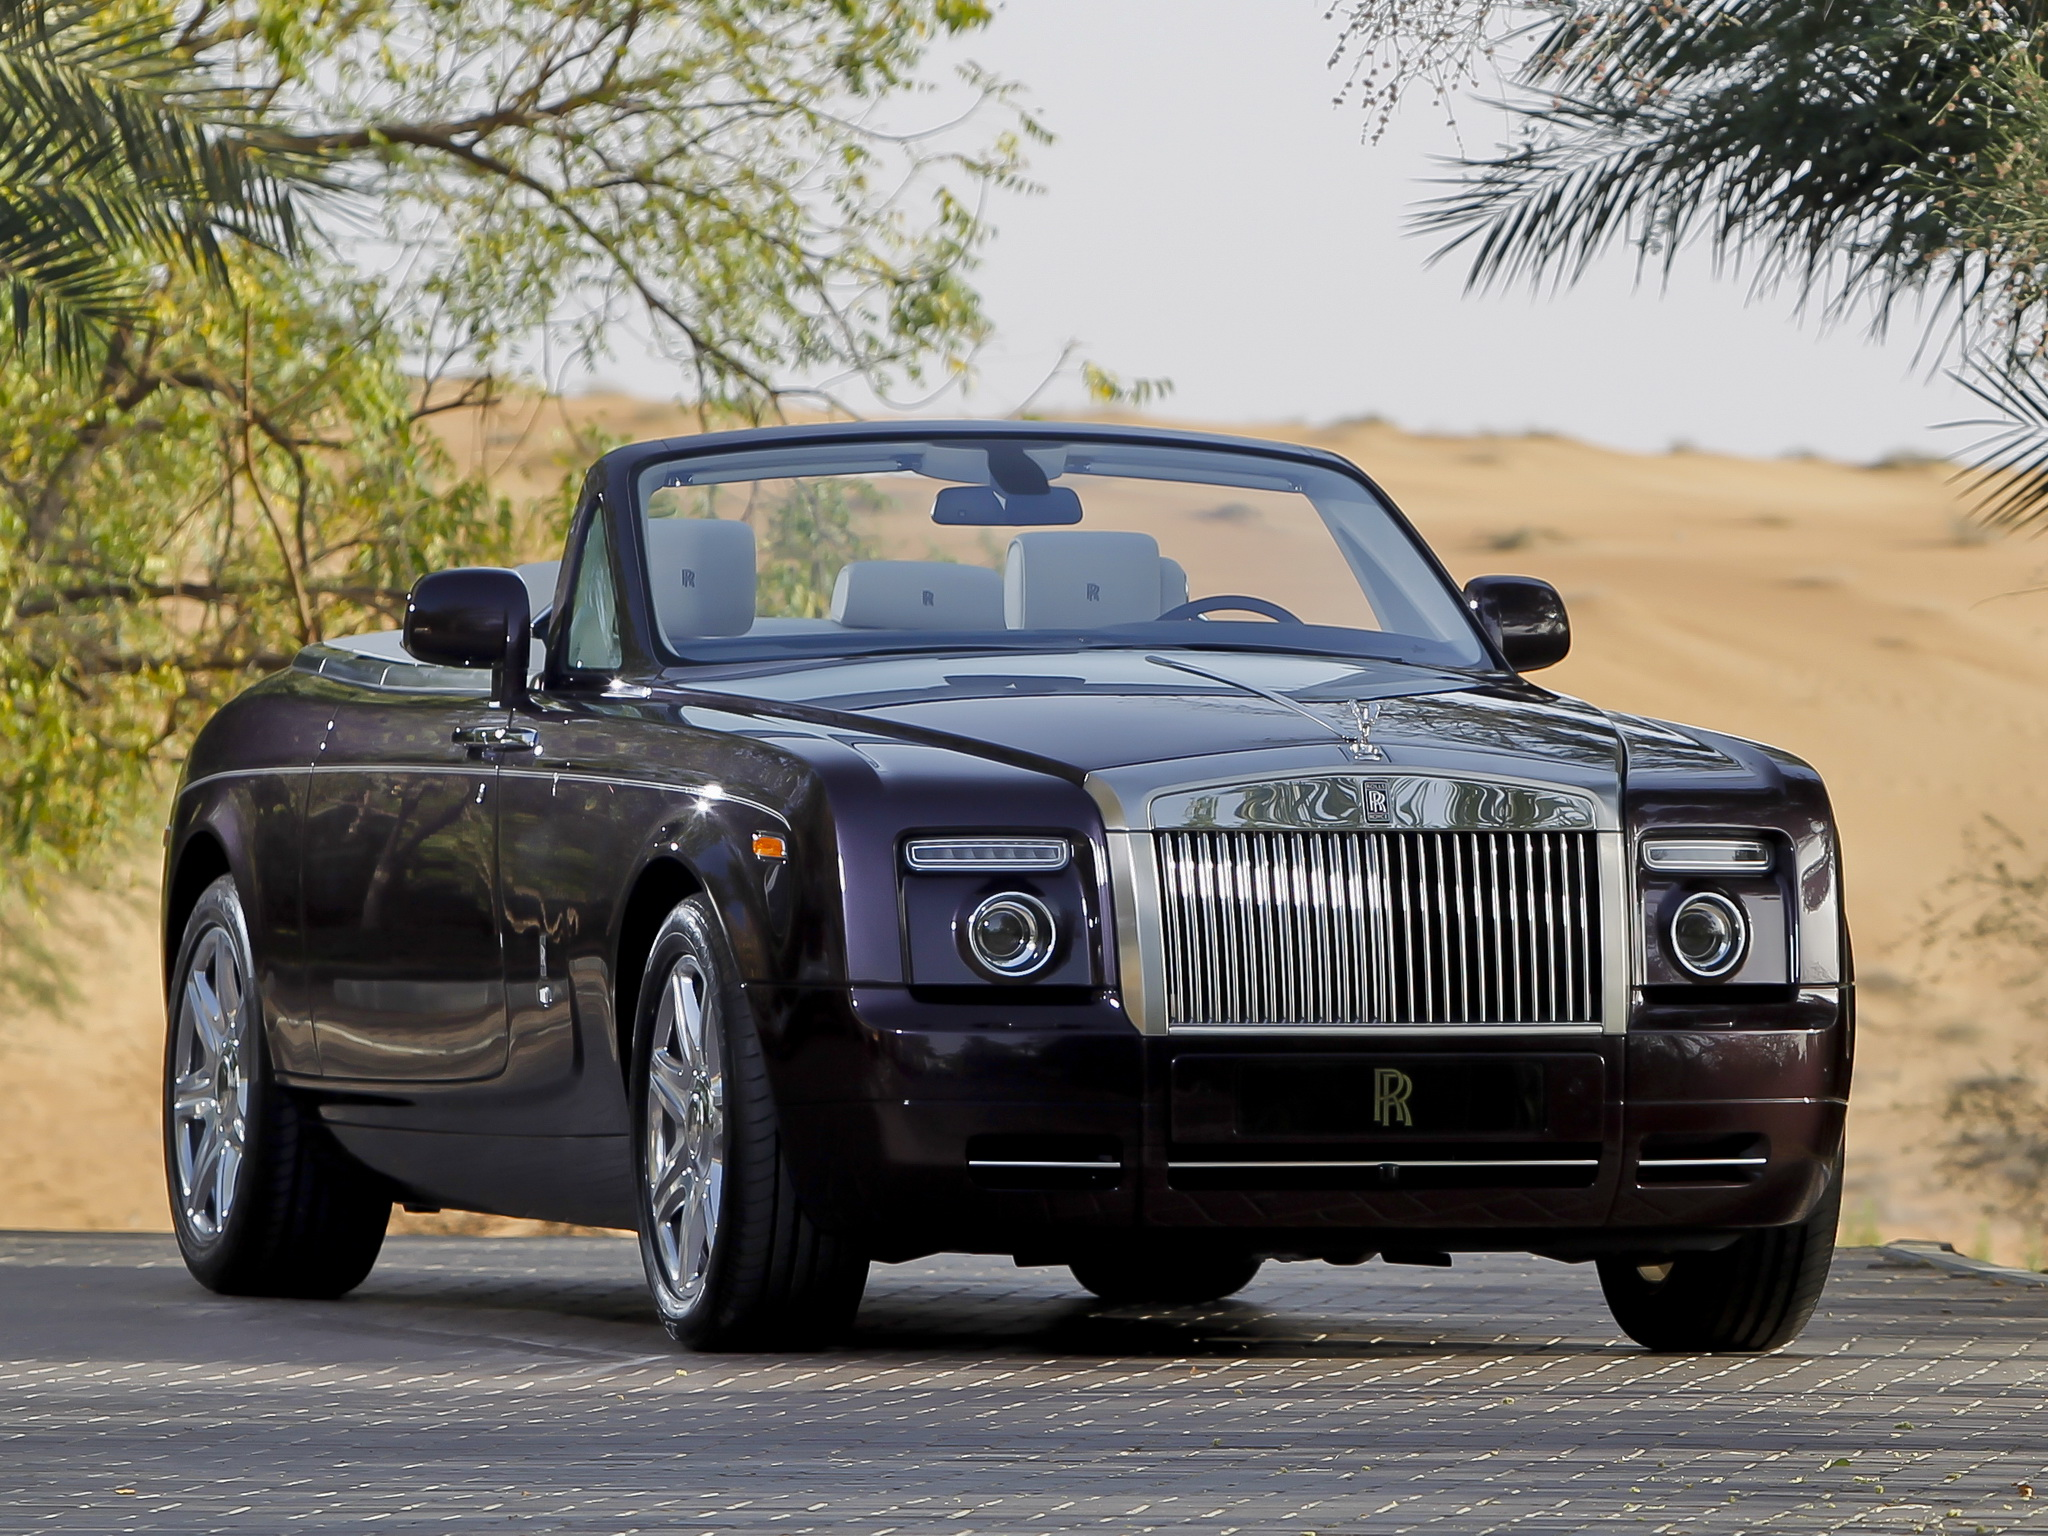 2008 Rolls royce Phantom #13